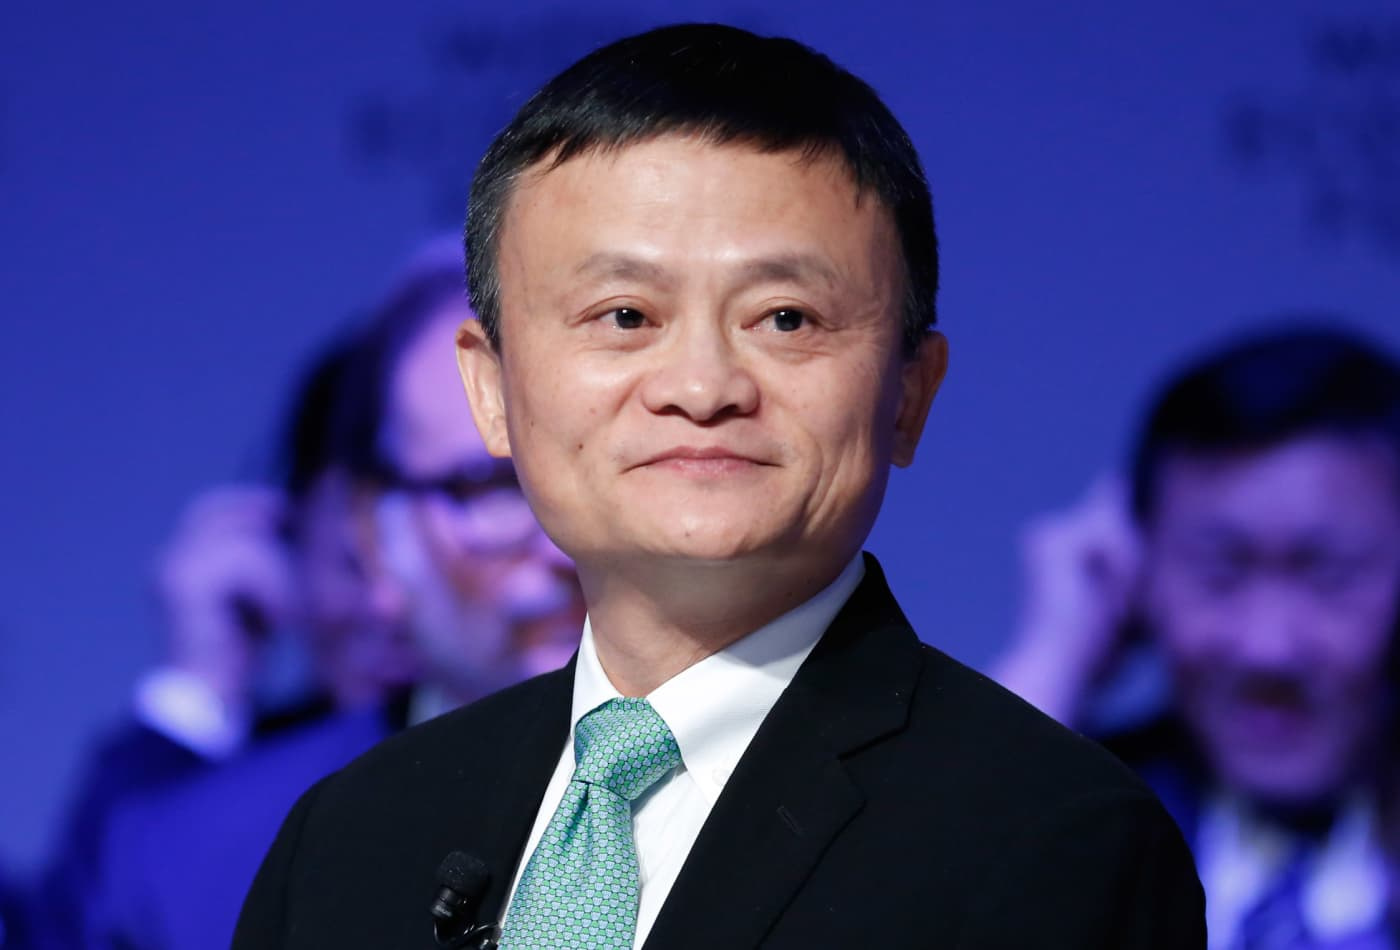 Lesson Alibaba's Jack Ma learned after being rejected for a